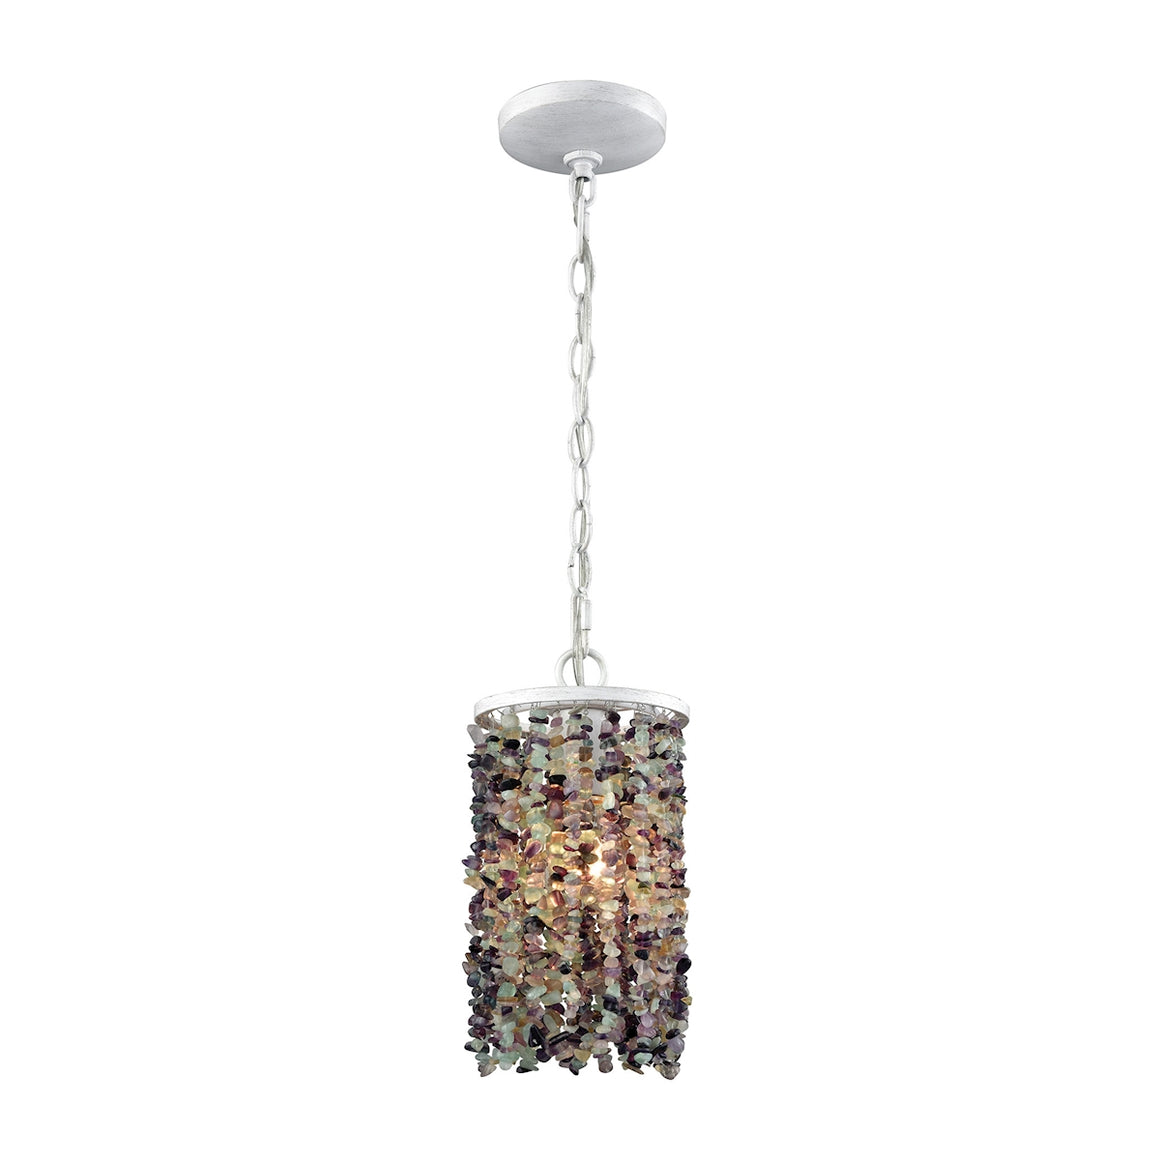 Agate Stones 1 Light Pendant In Off White With Purple Agate Stones 65340/1 by Elk Lighting